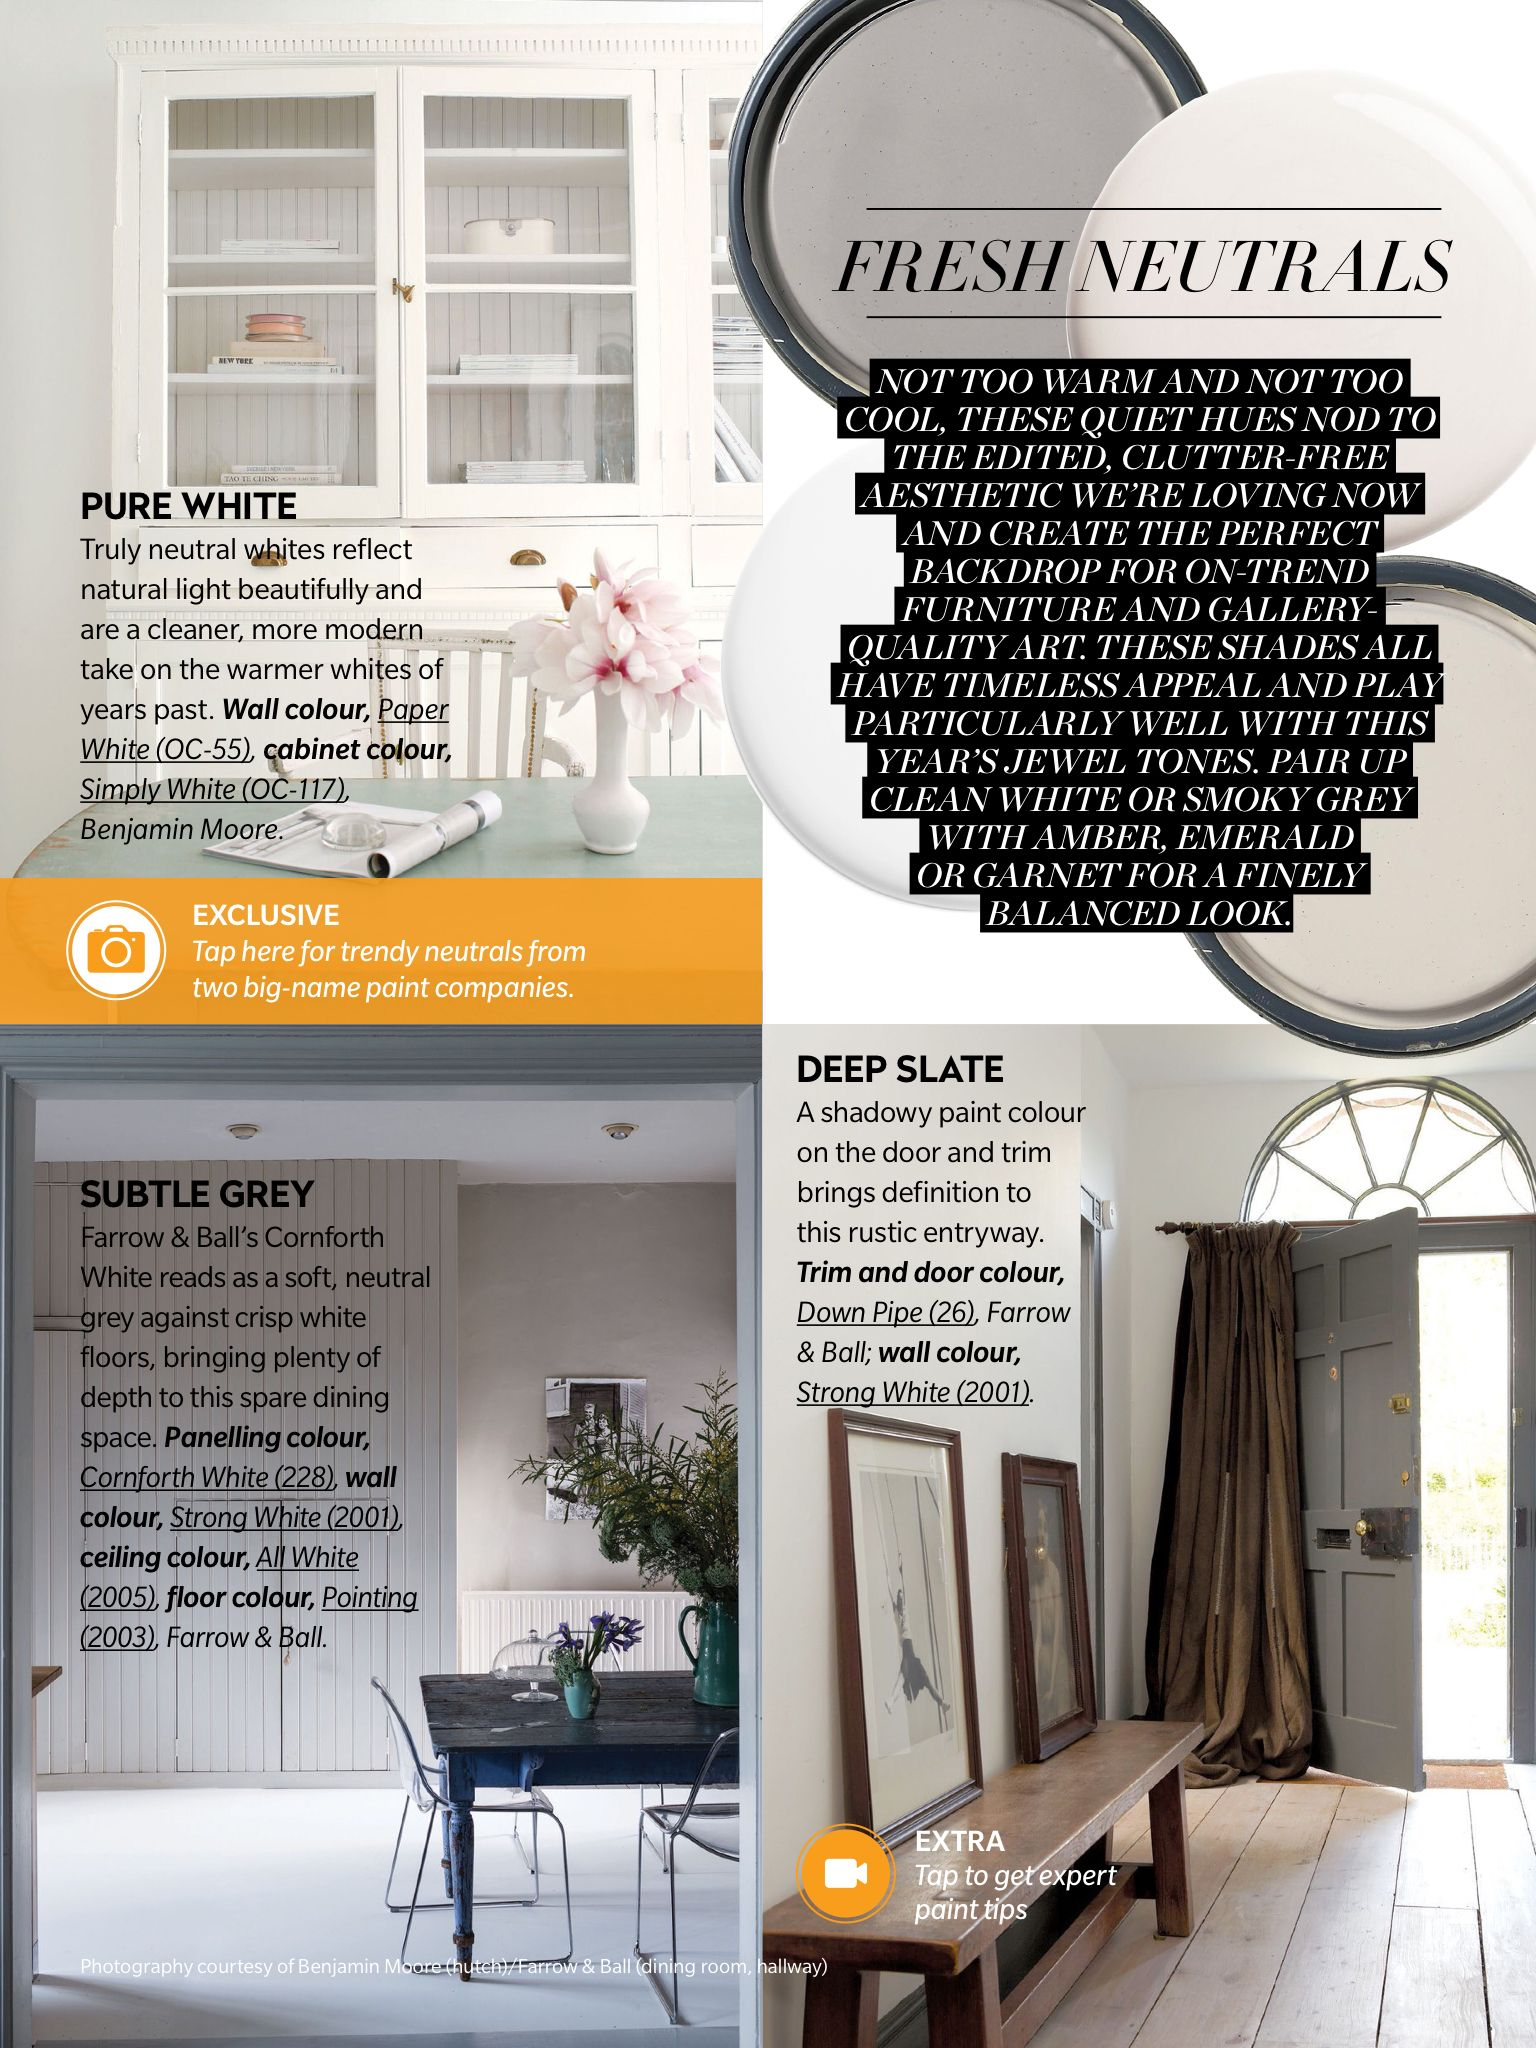 Paint Trends From House & Home Magazine, January 2016 Read